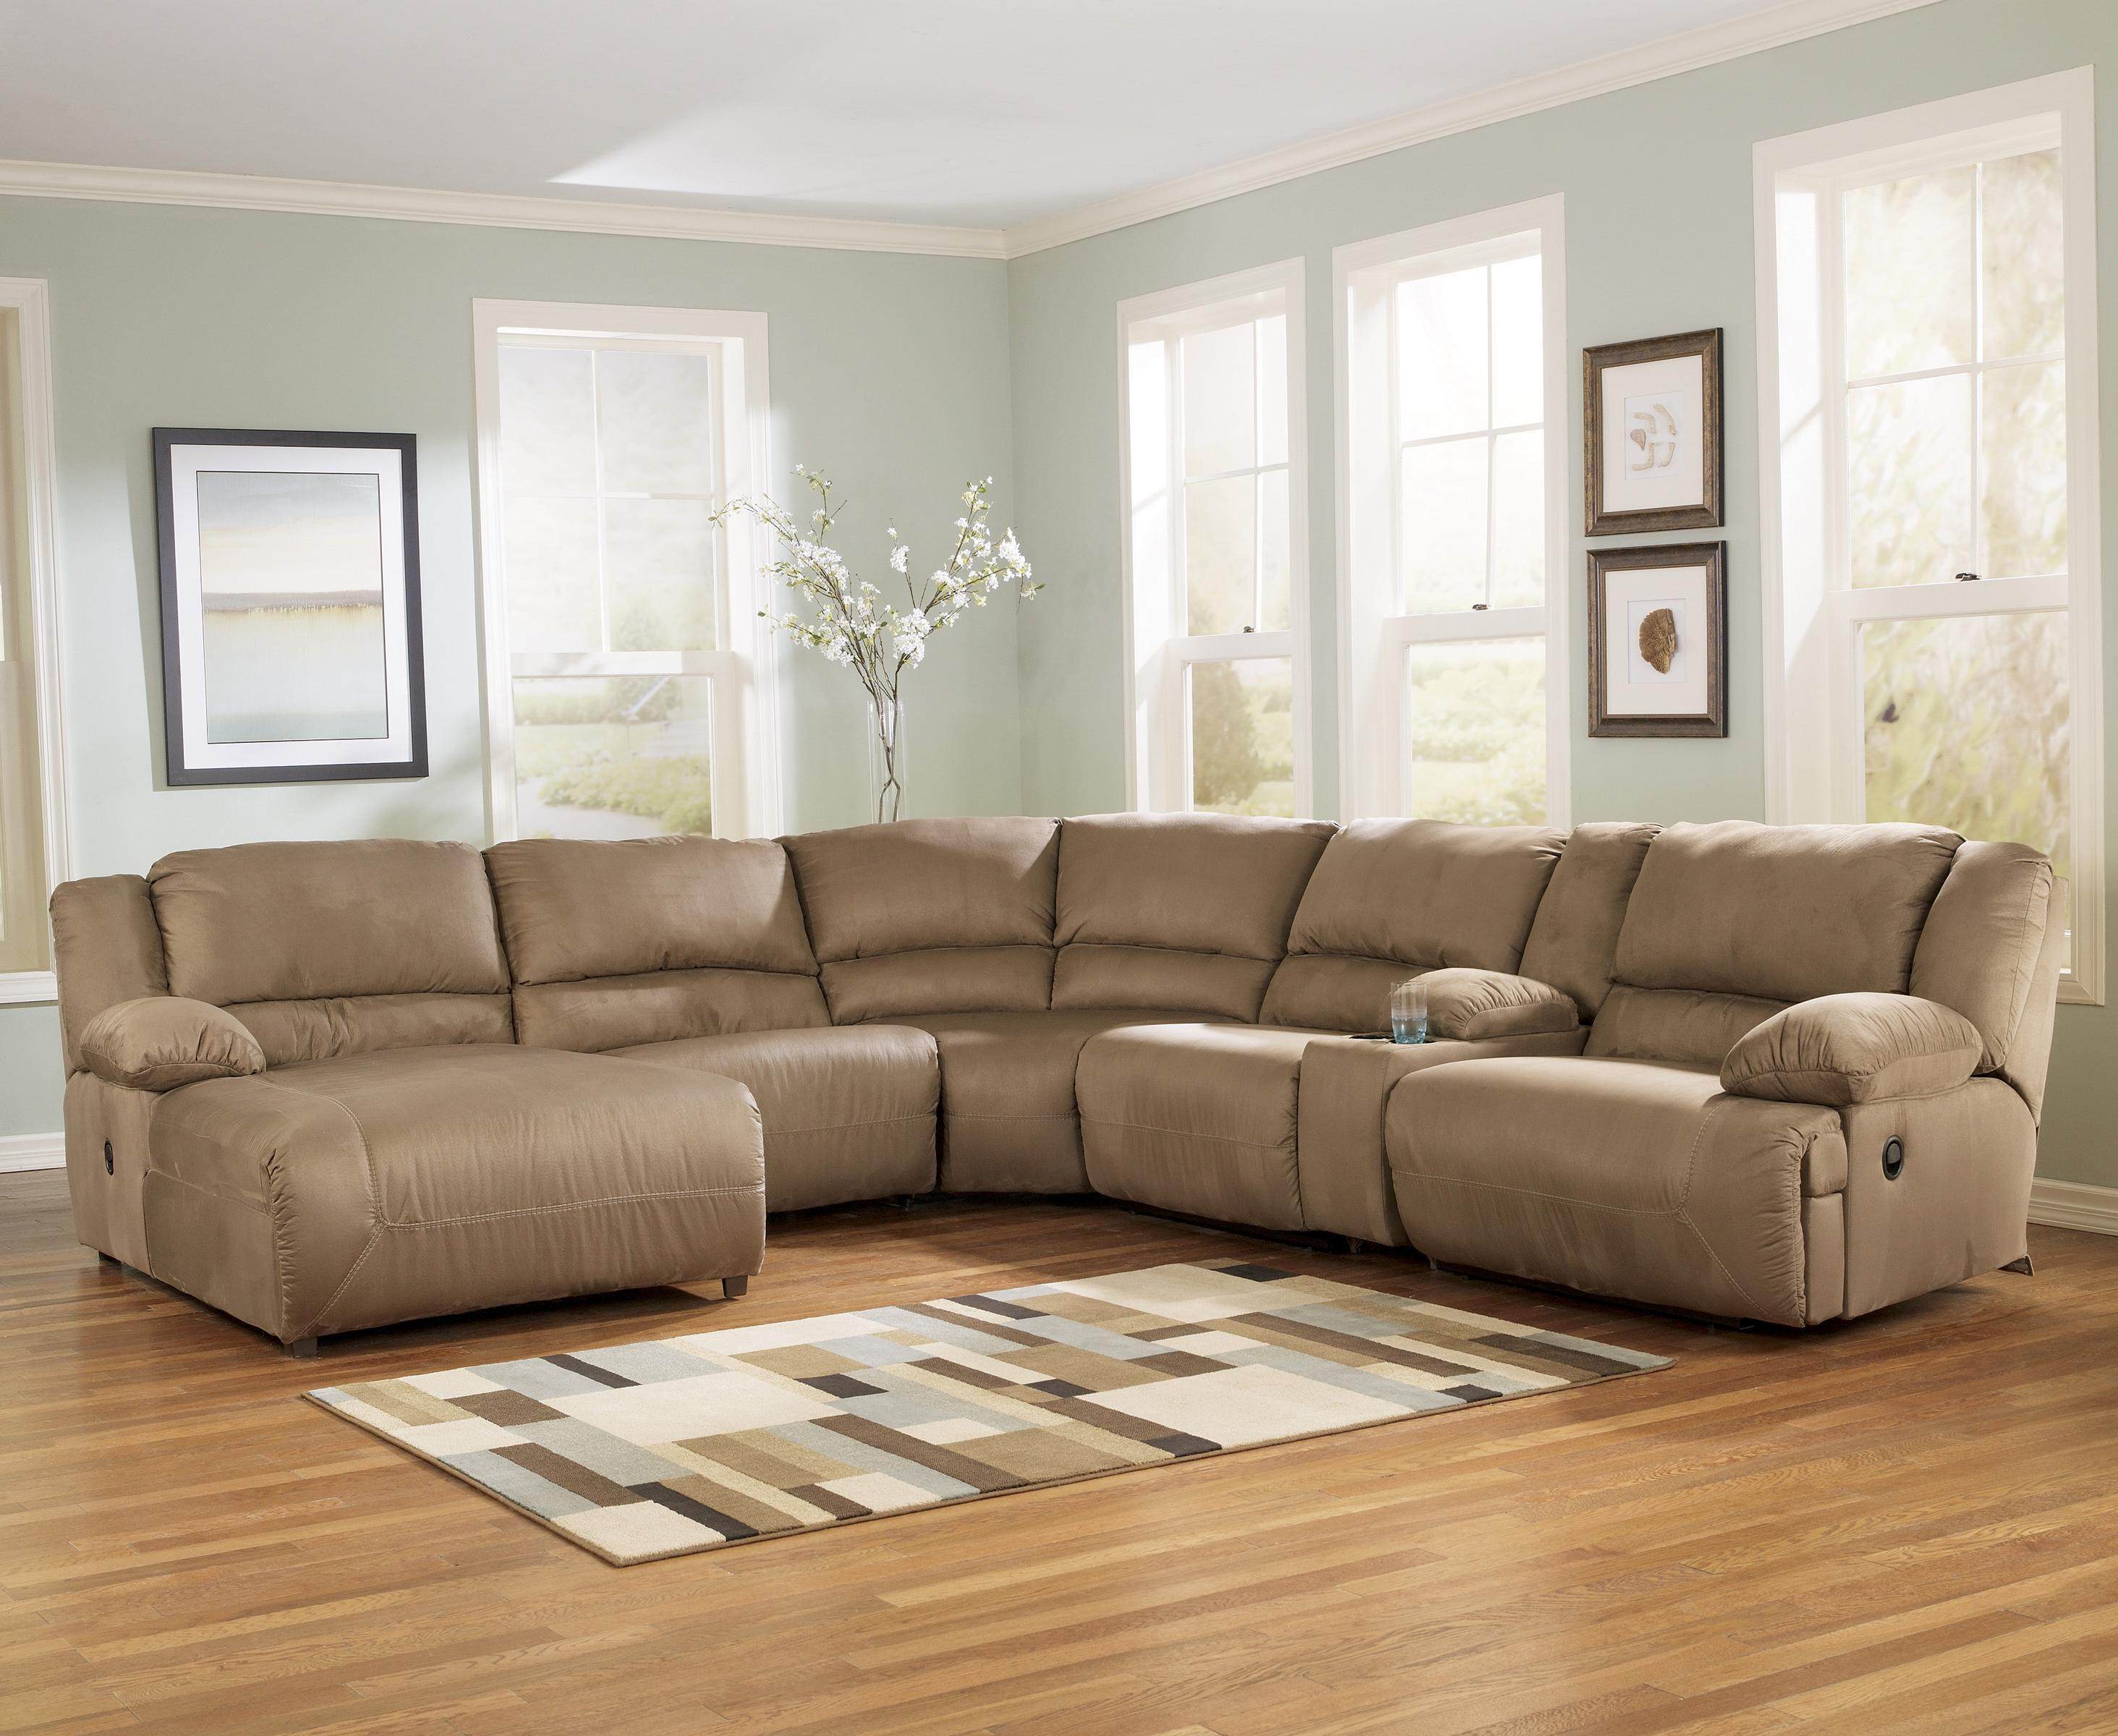 6 piece motion sectional with left chaise and console by for Ashley chaise sectional